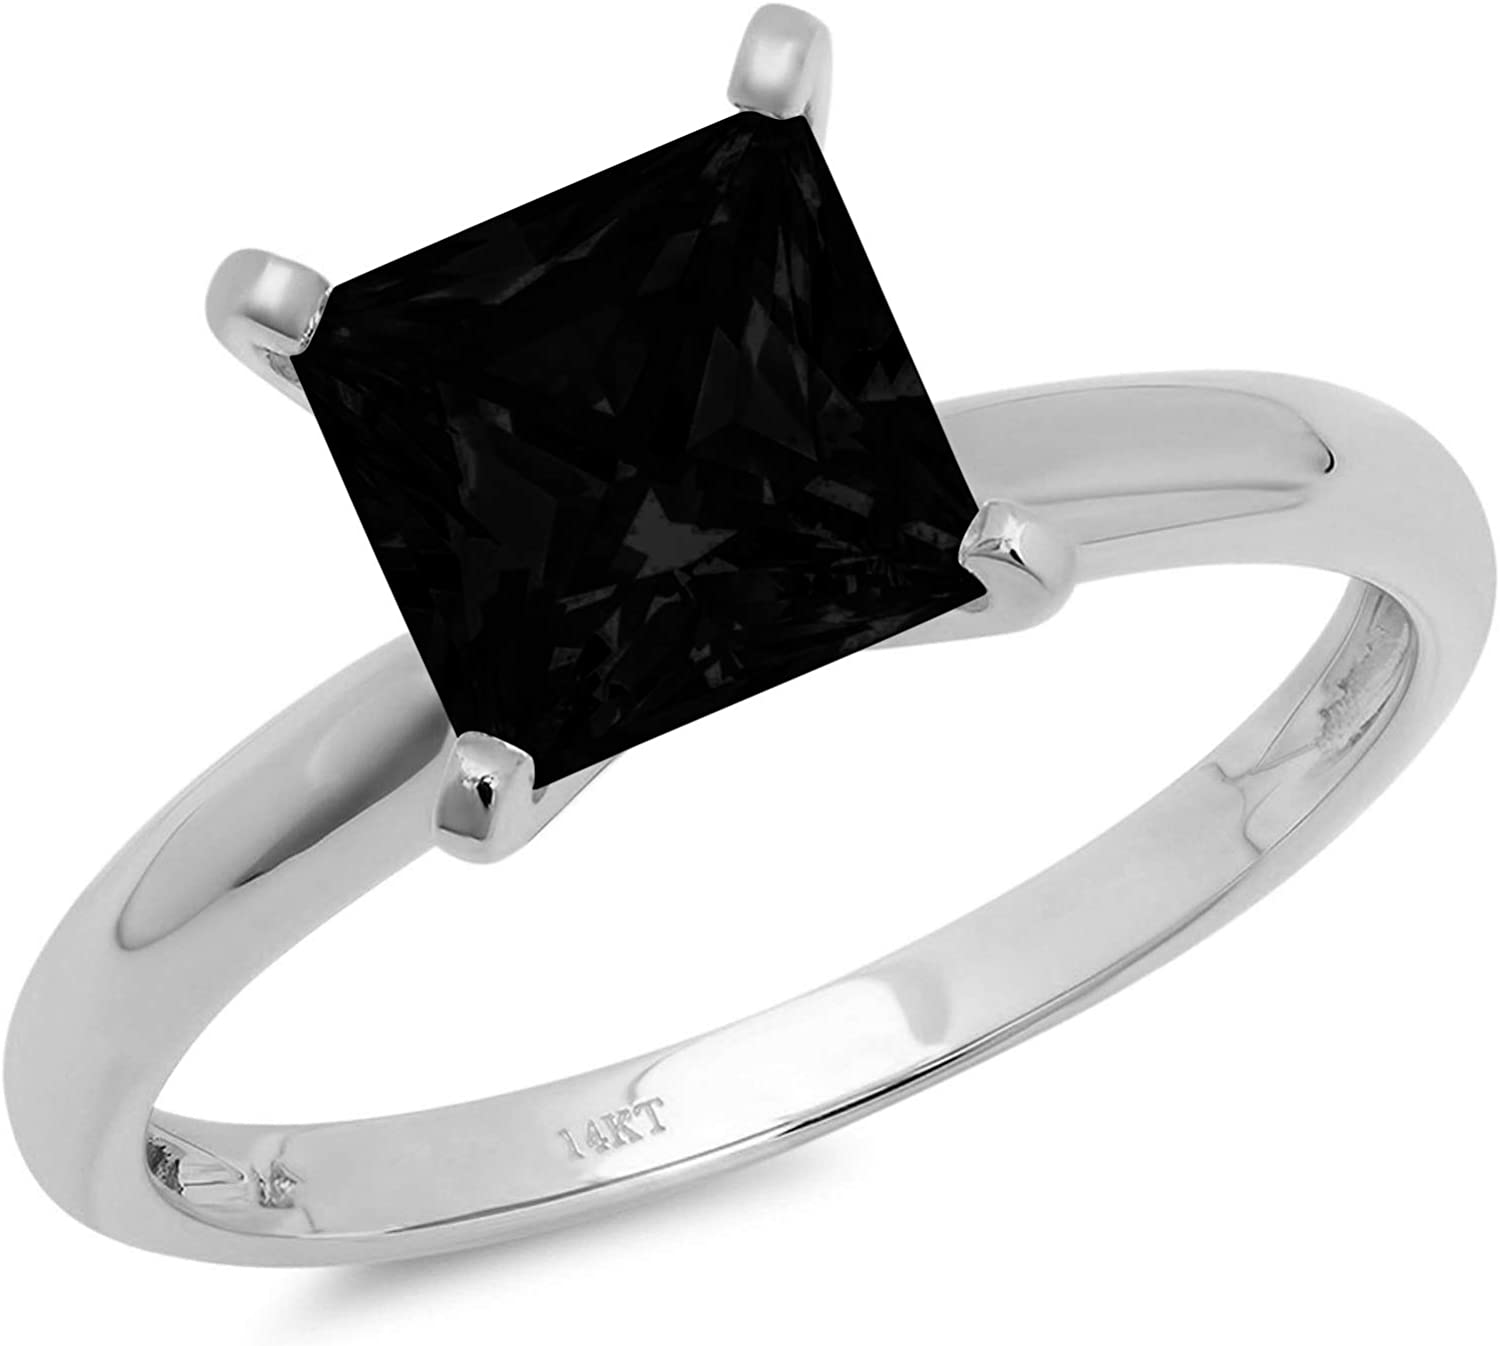 0.4ct Brilliant Princess Cut Solitaire Flawless Genuine Natural Black Onyx Ideal VVS1 4-Prong Engagement Wedding Bridal Promise Anniversary Designer Ring Solid 14k White Gold for Women